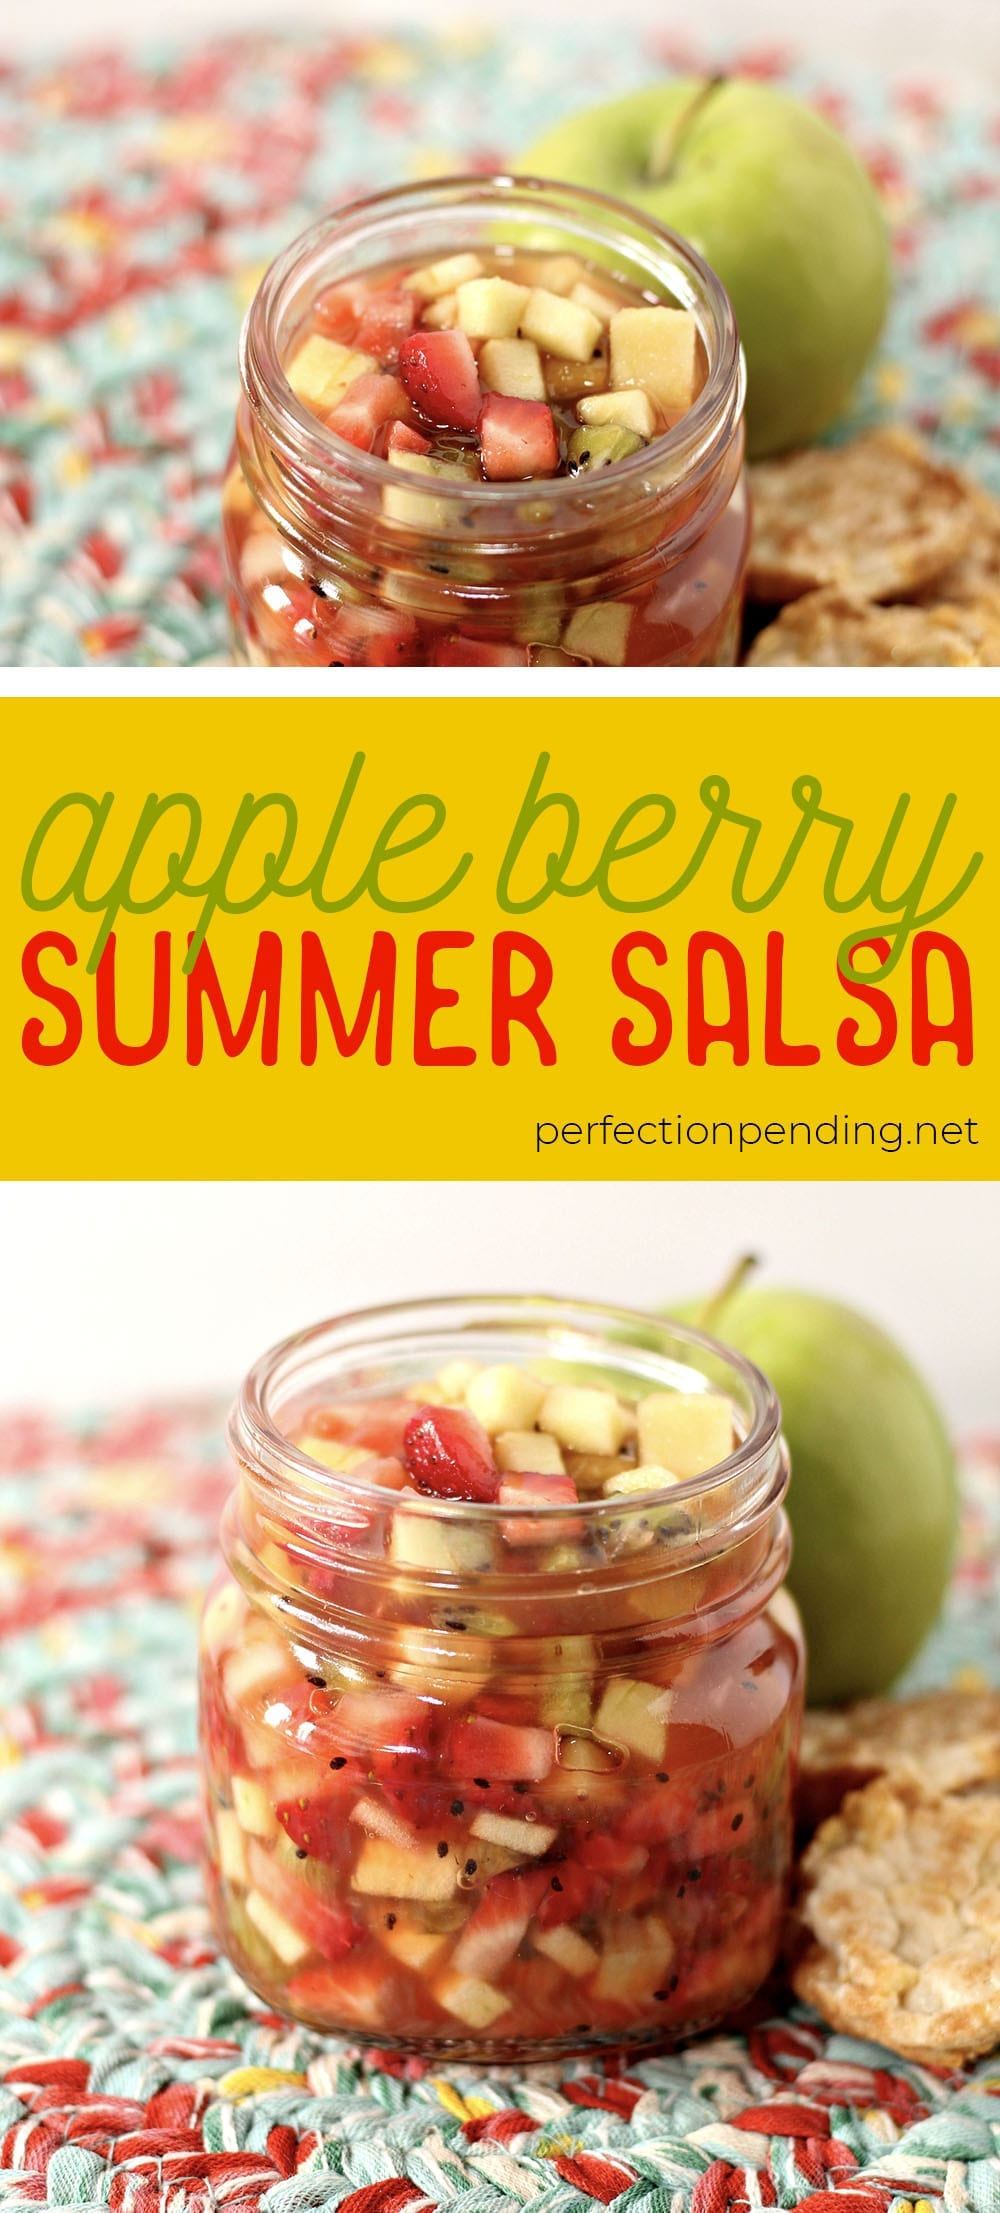 This apple berry summer salsa is the PERFECT treat for the end of summer. It's sweet, refreshing, and soooo delicious! If you're looking for an easy fruit salsa recipe - you'll want to try this. It's a healthy fruit salsa everyone will love. Perfect for last minute barbecues, summer parties, playdates, and even birthdays. #fruit #fruitsalad #summerrecipe #summer #appleberrysalsa #summersalsa #sweetsalsa